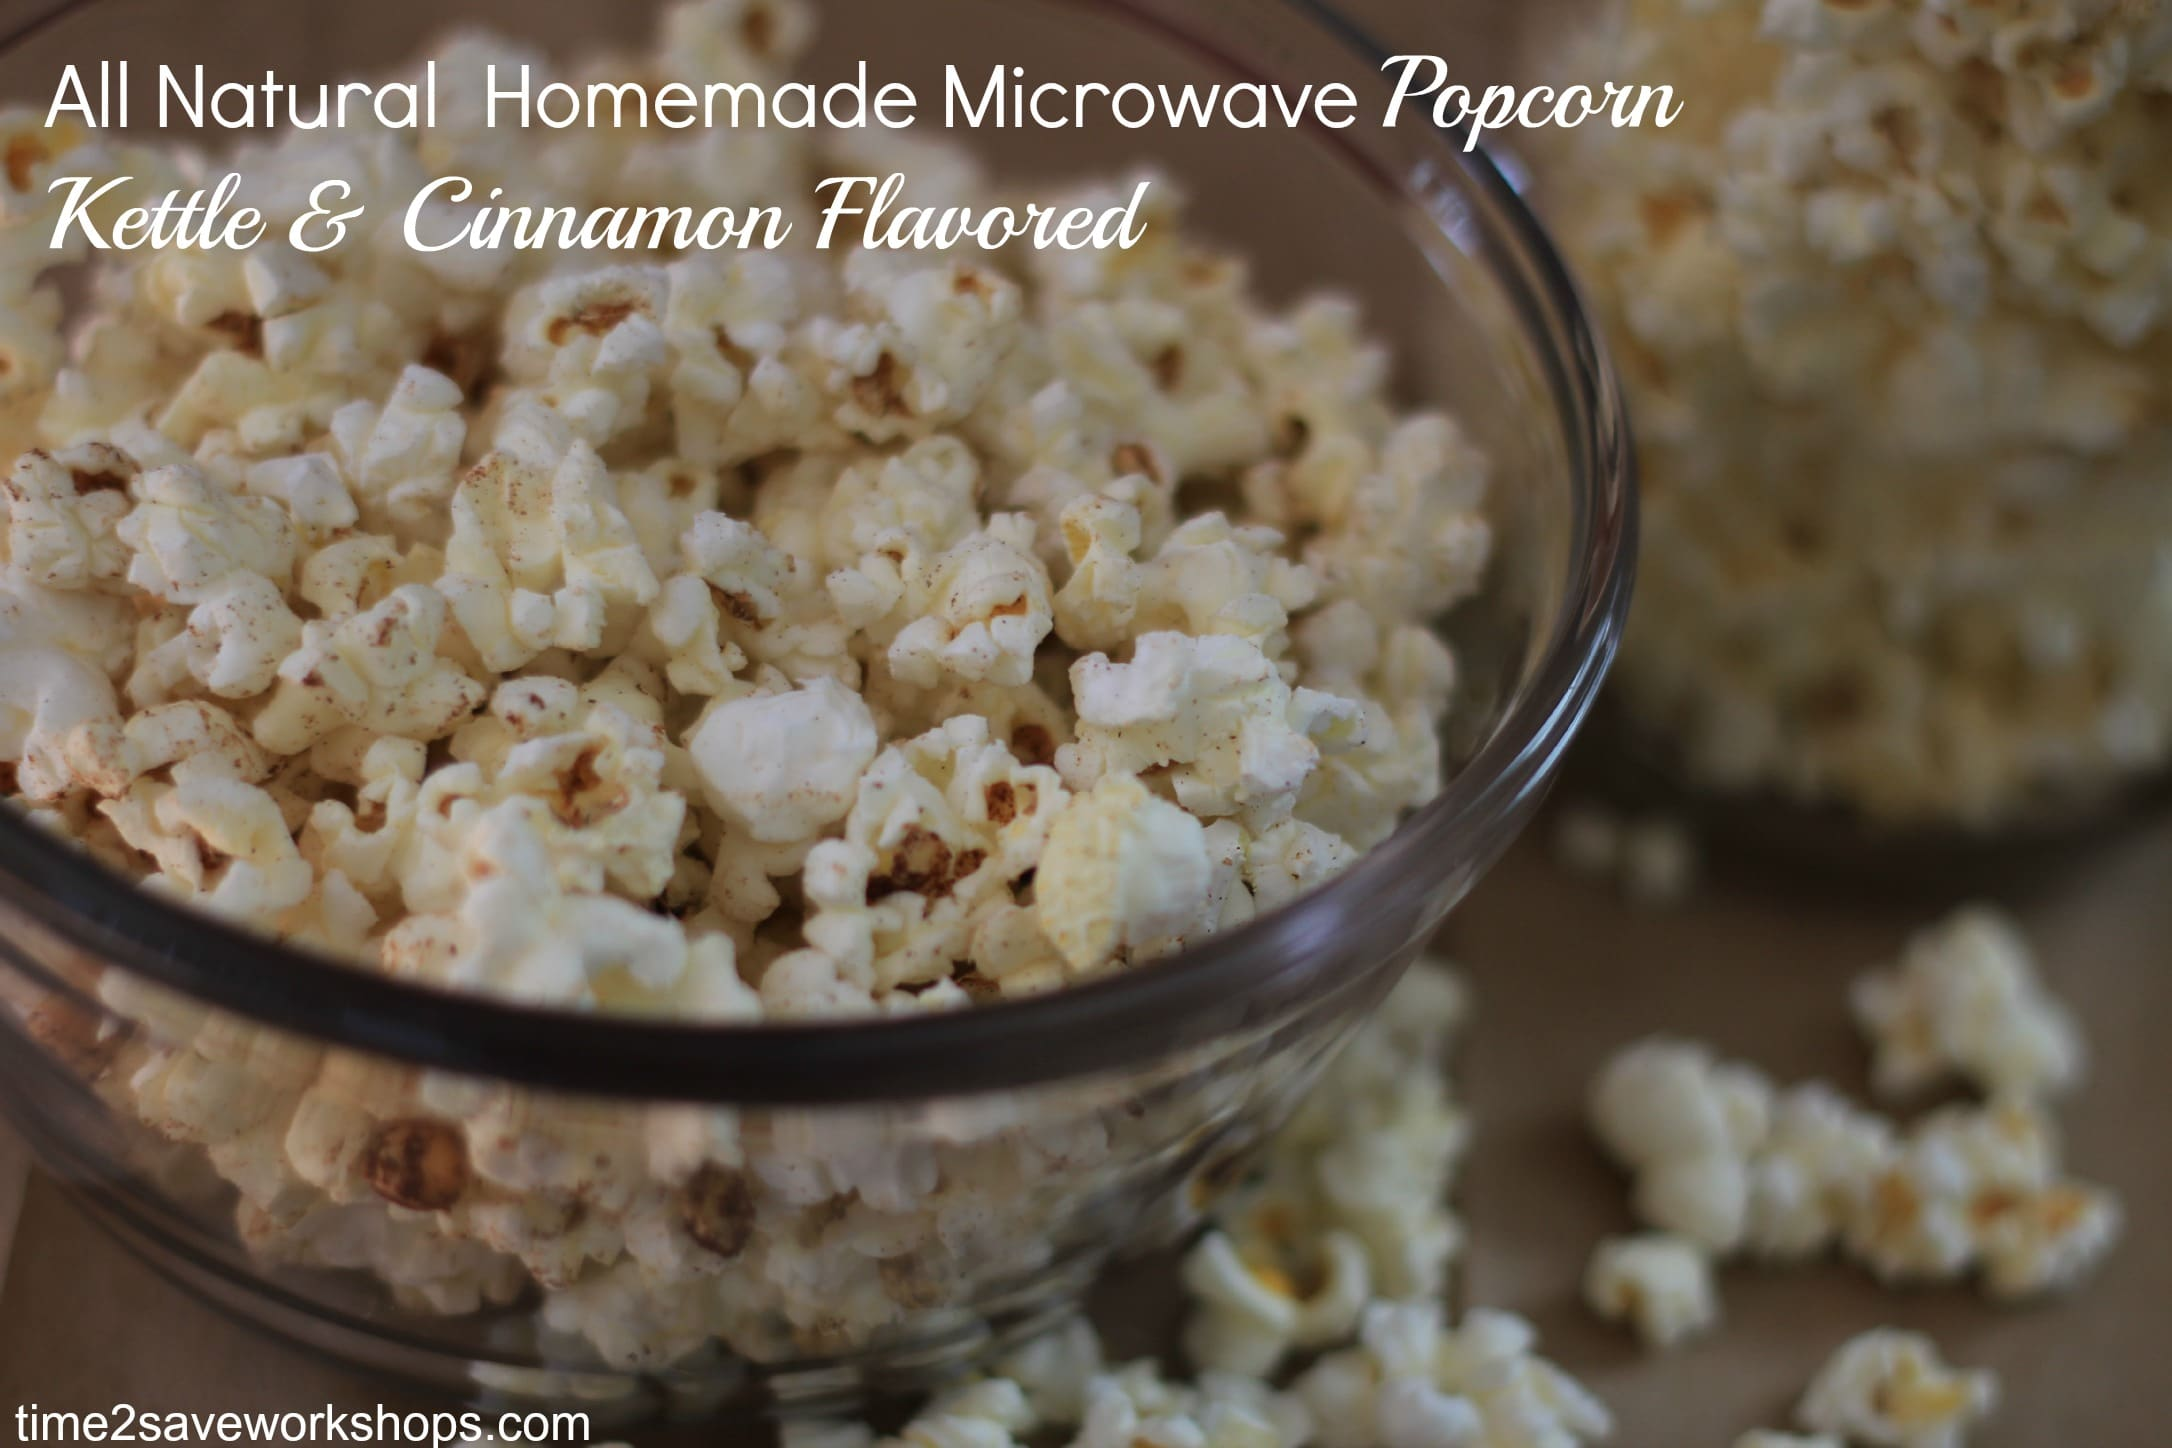 Homemade Microwave Popcorn:  All Natural Healthy Snack Idea